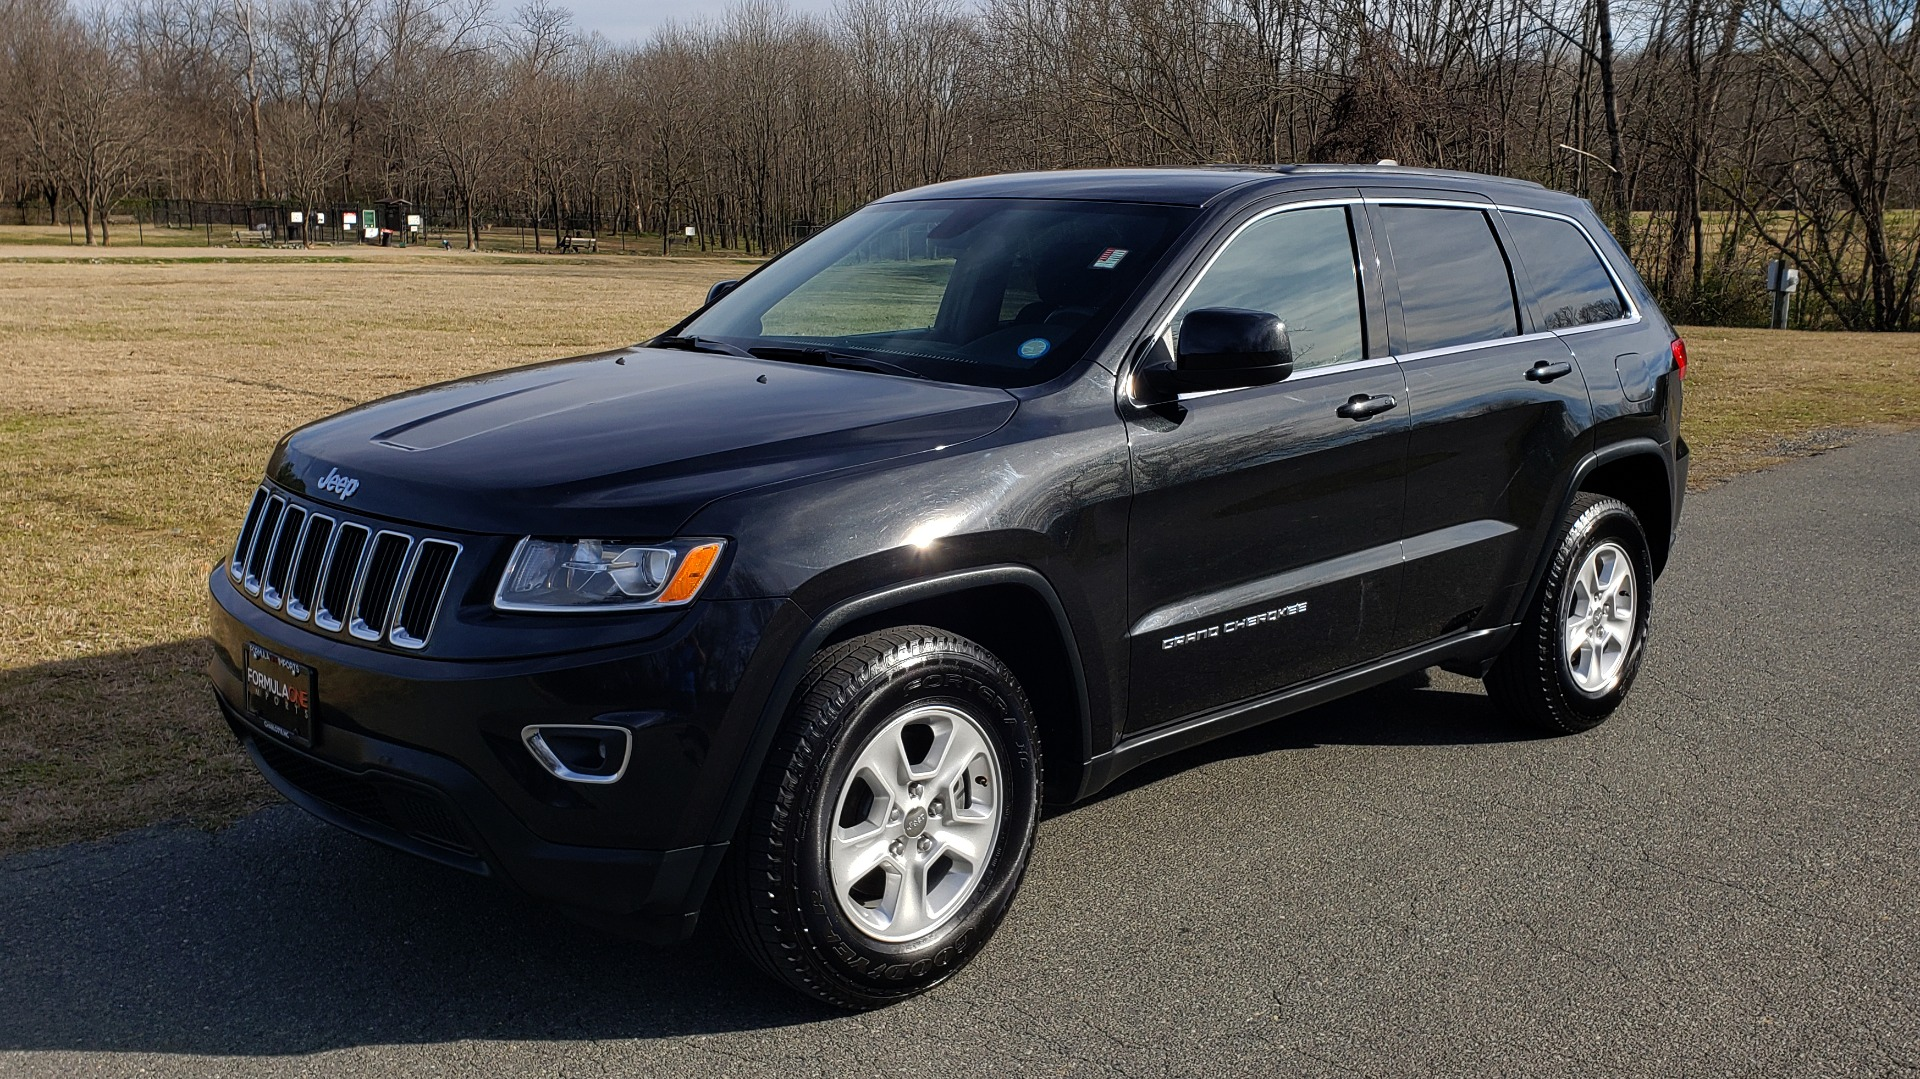 Used 2015 Jeep GRAND CHEROKEE LAREDO / 4X2 / 3.6L V6 / AUTO / 17IN WHEELS for sale Sold at Formula Imports in Charlotte NC 28227 1